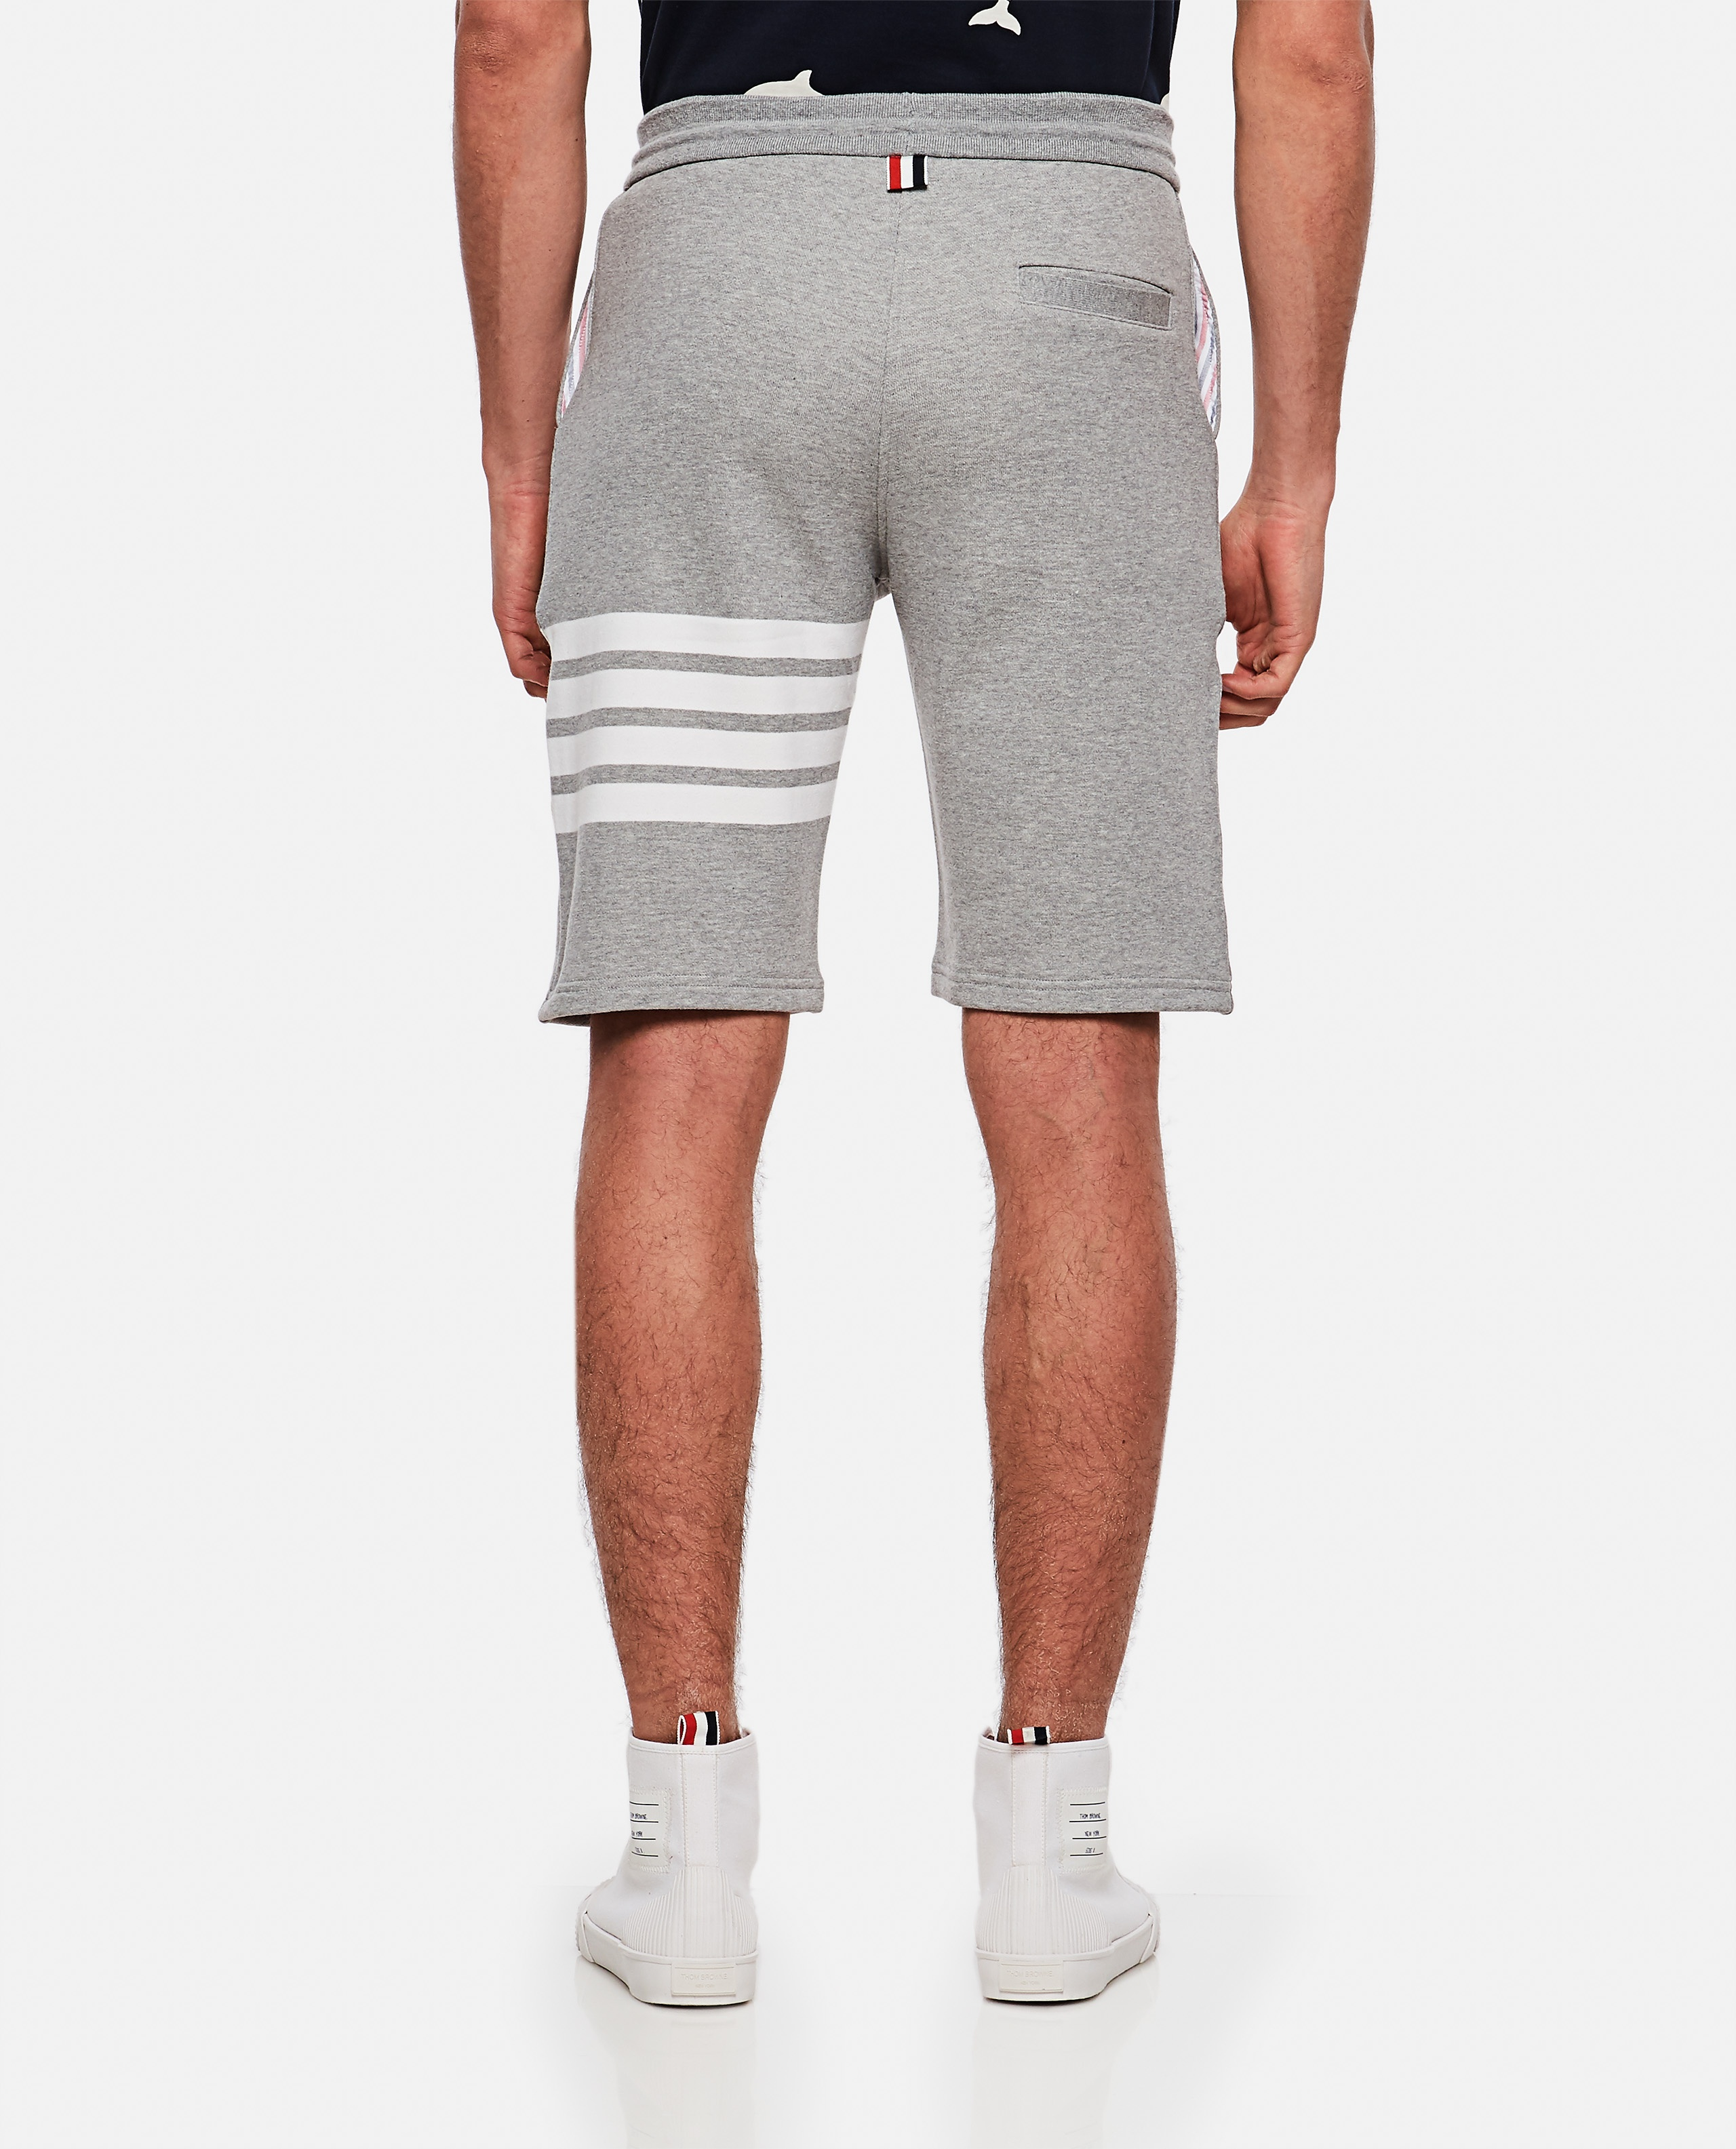 Cotton Shorts Men Thom Browne 000080620012609 3